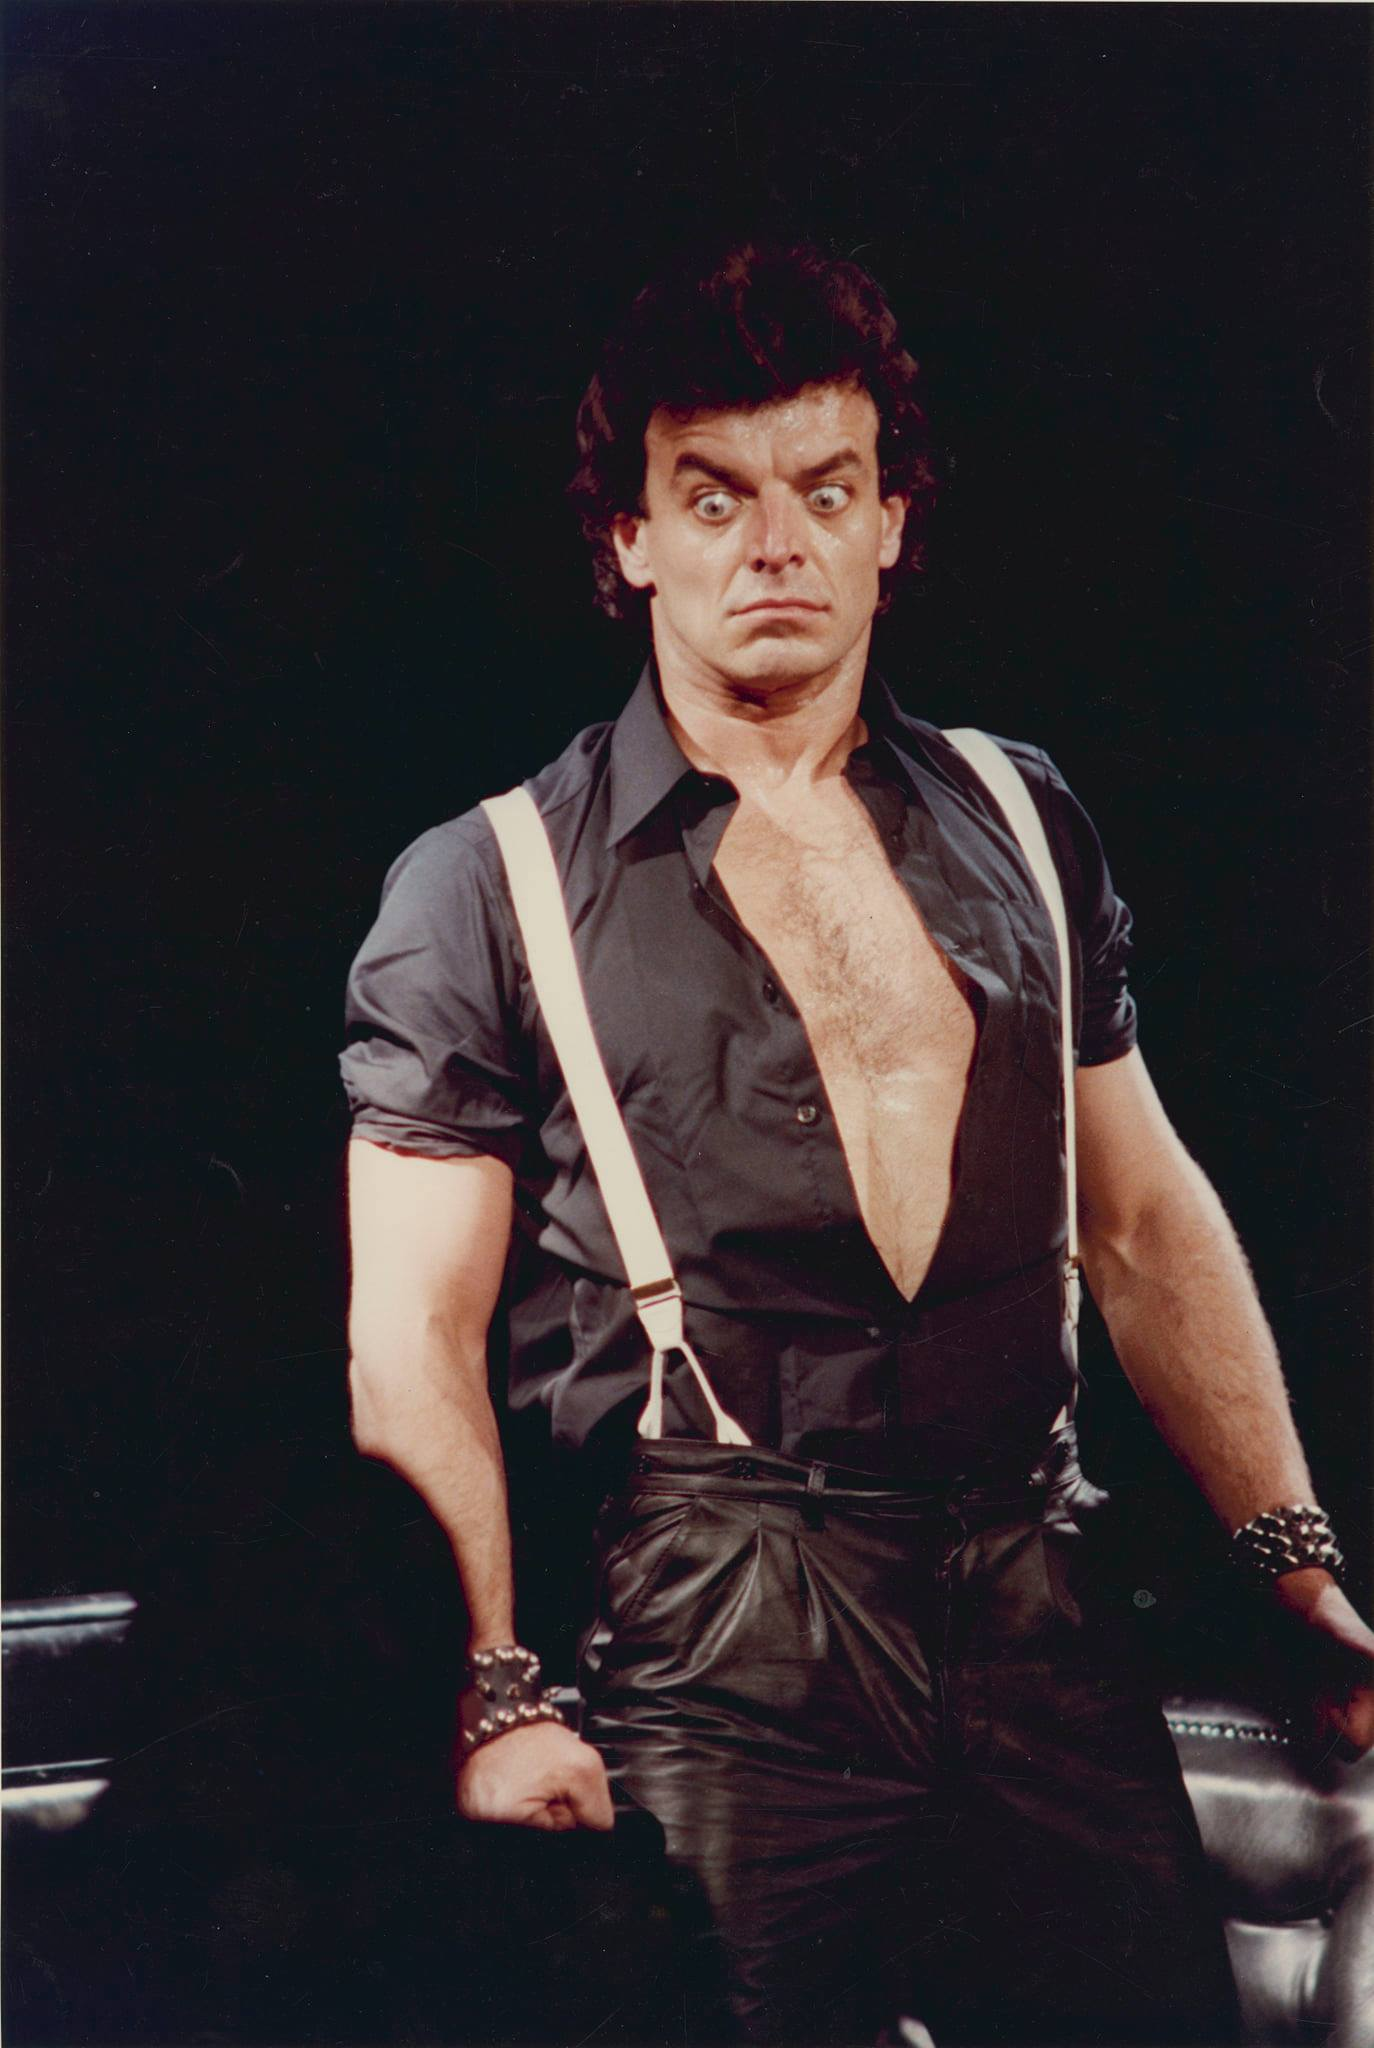 An actor with a shocked expression wearing suspenders and an unbuttoned black collared shirt tucked into leather pants